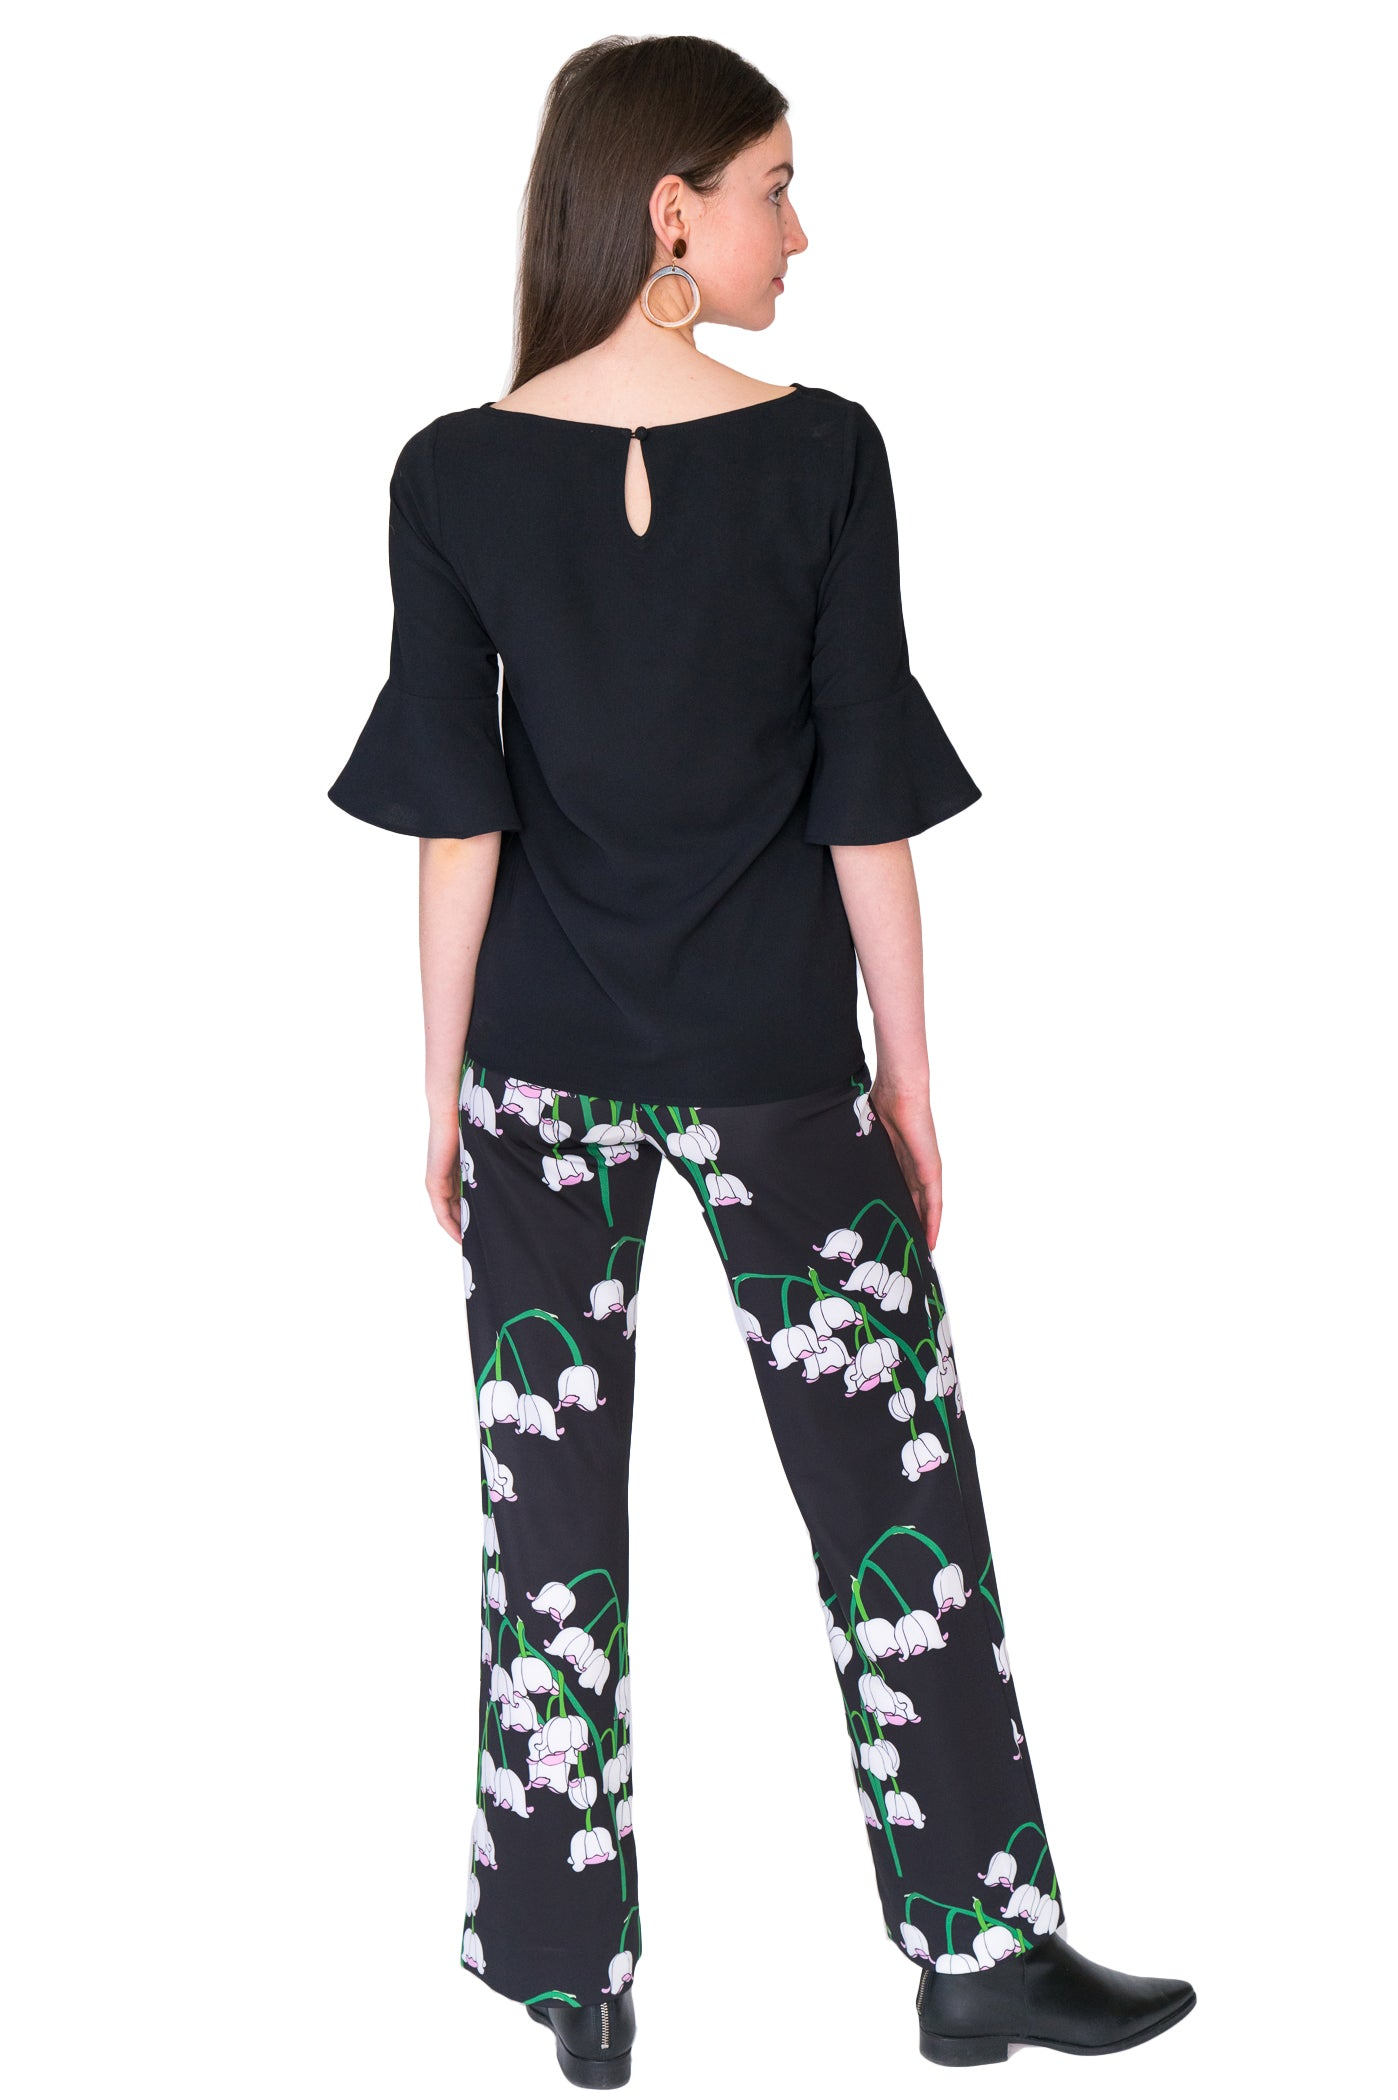 Toby Palazzo Pant in Big Lily $165 - Elizabeth Ackerman New York